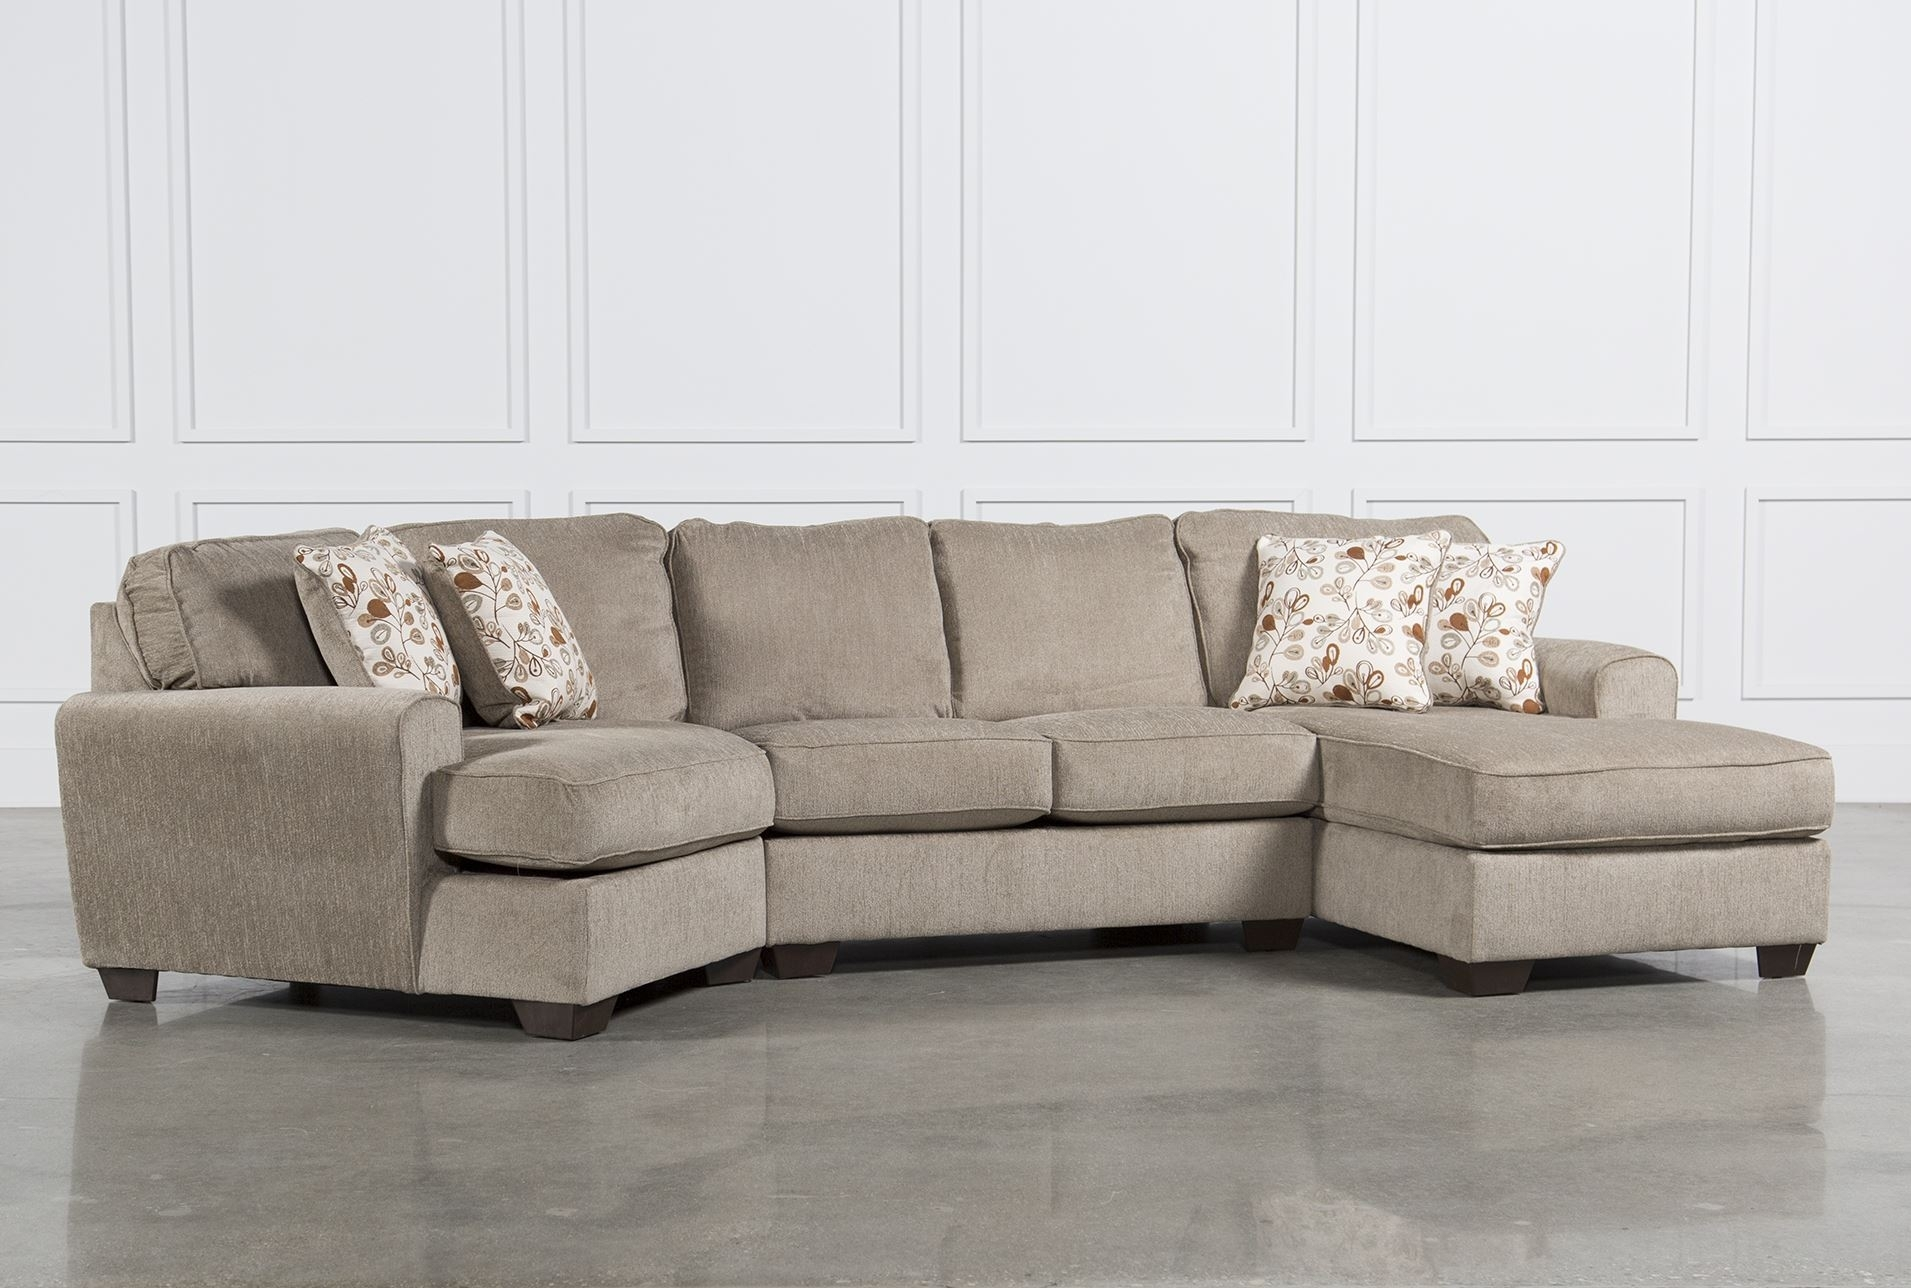 Furniture : Sectional Sofa Eugene Or Sectional Sofa 2 Piece Set in Eugene Oregon Sectional Sofas (Image 6 of 10)